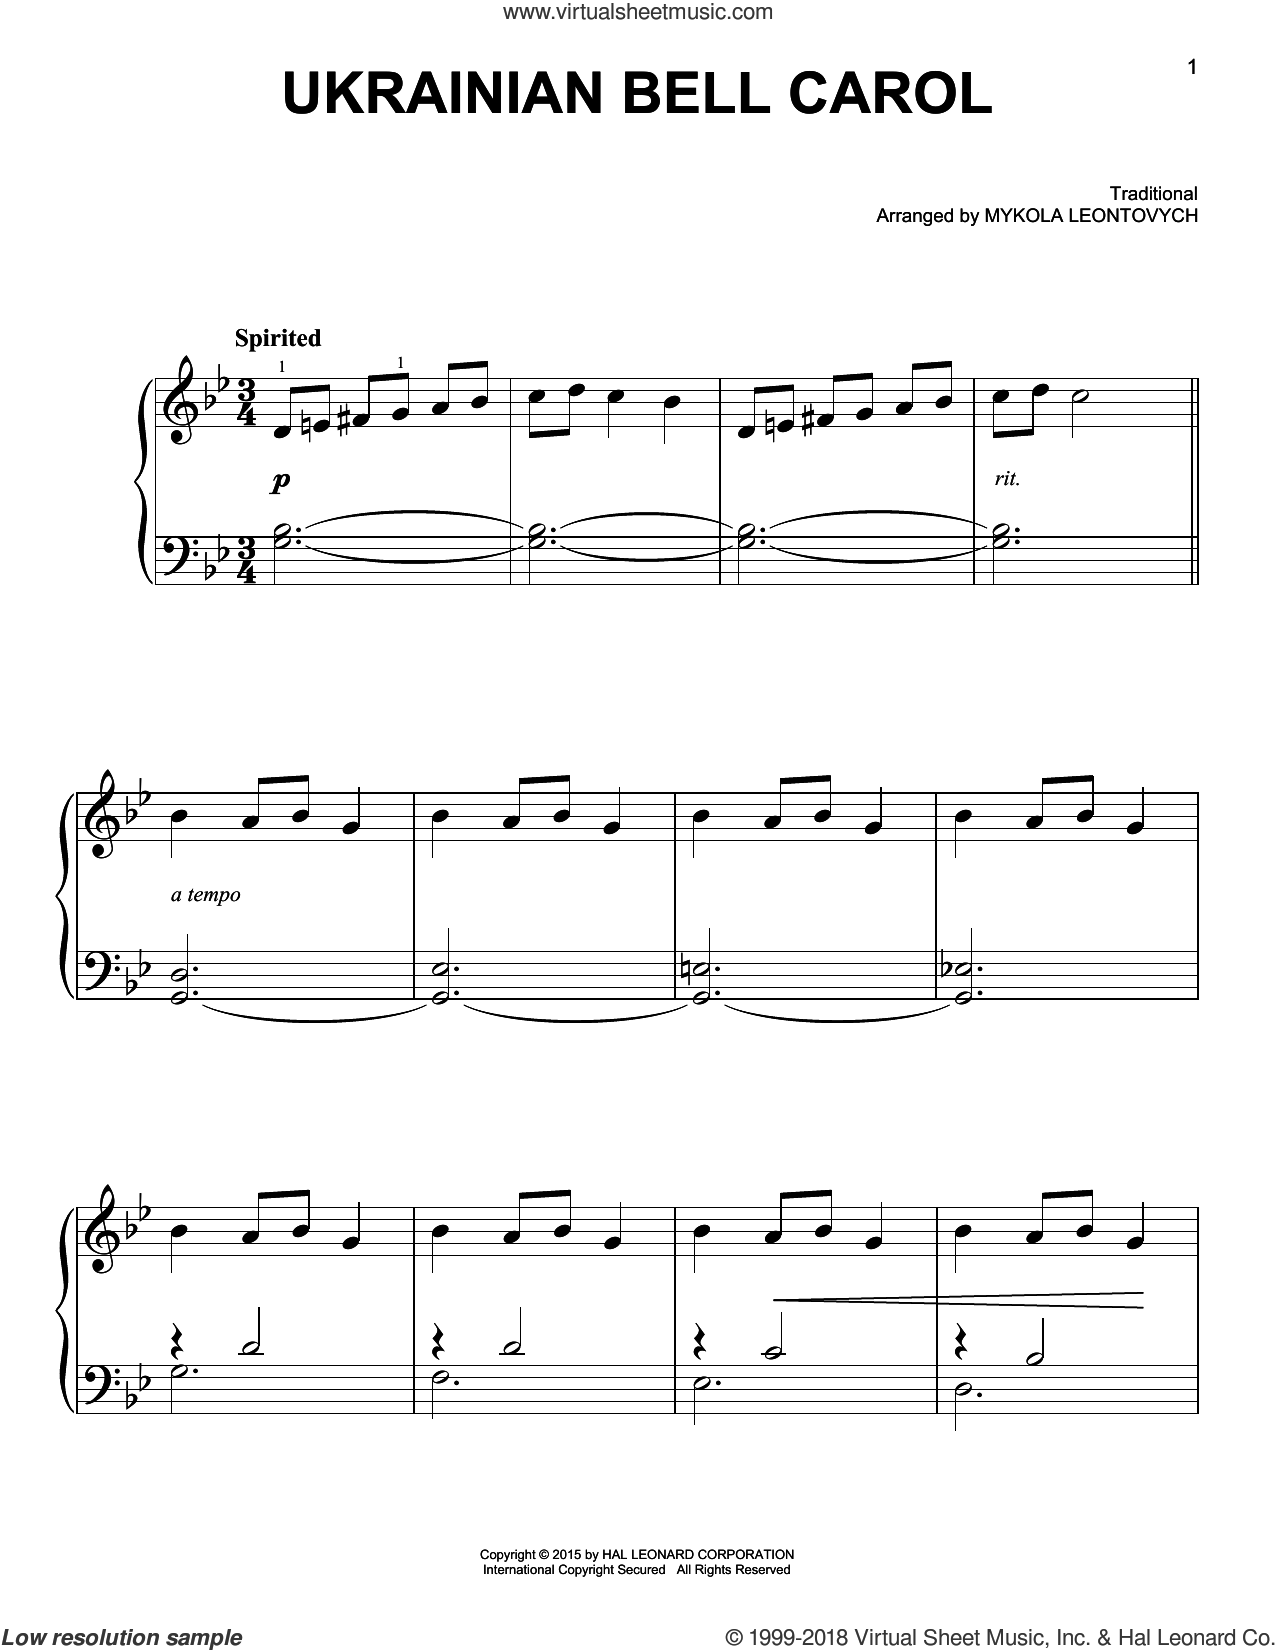 Ukrainian Bell Carol sheet music for piano solo by Mykola Leontovych, beginner skill level